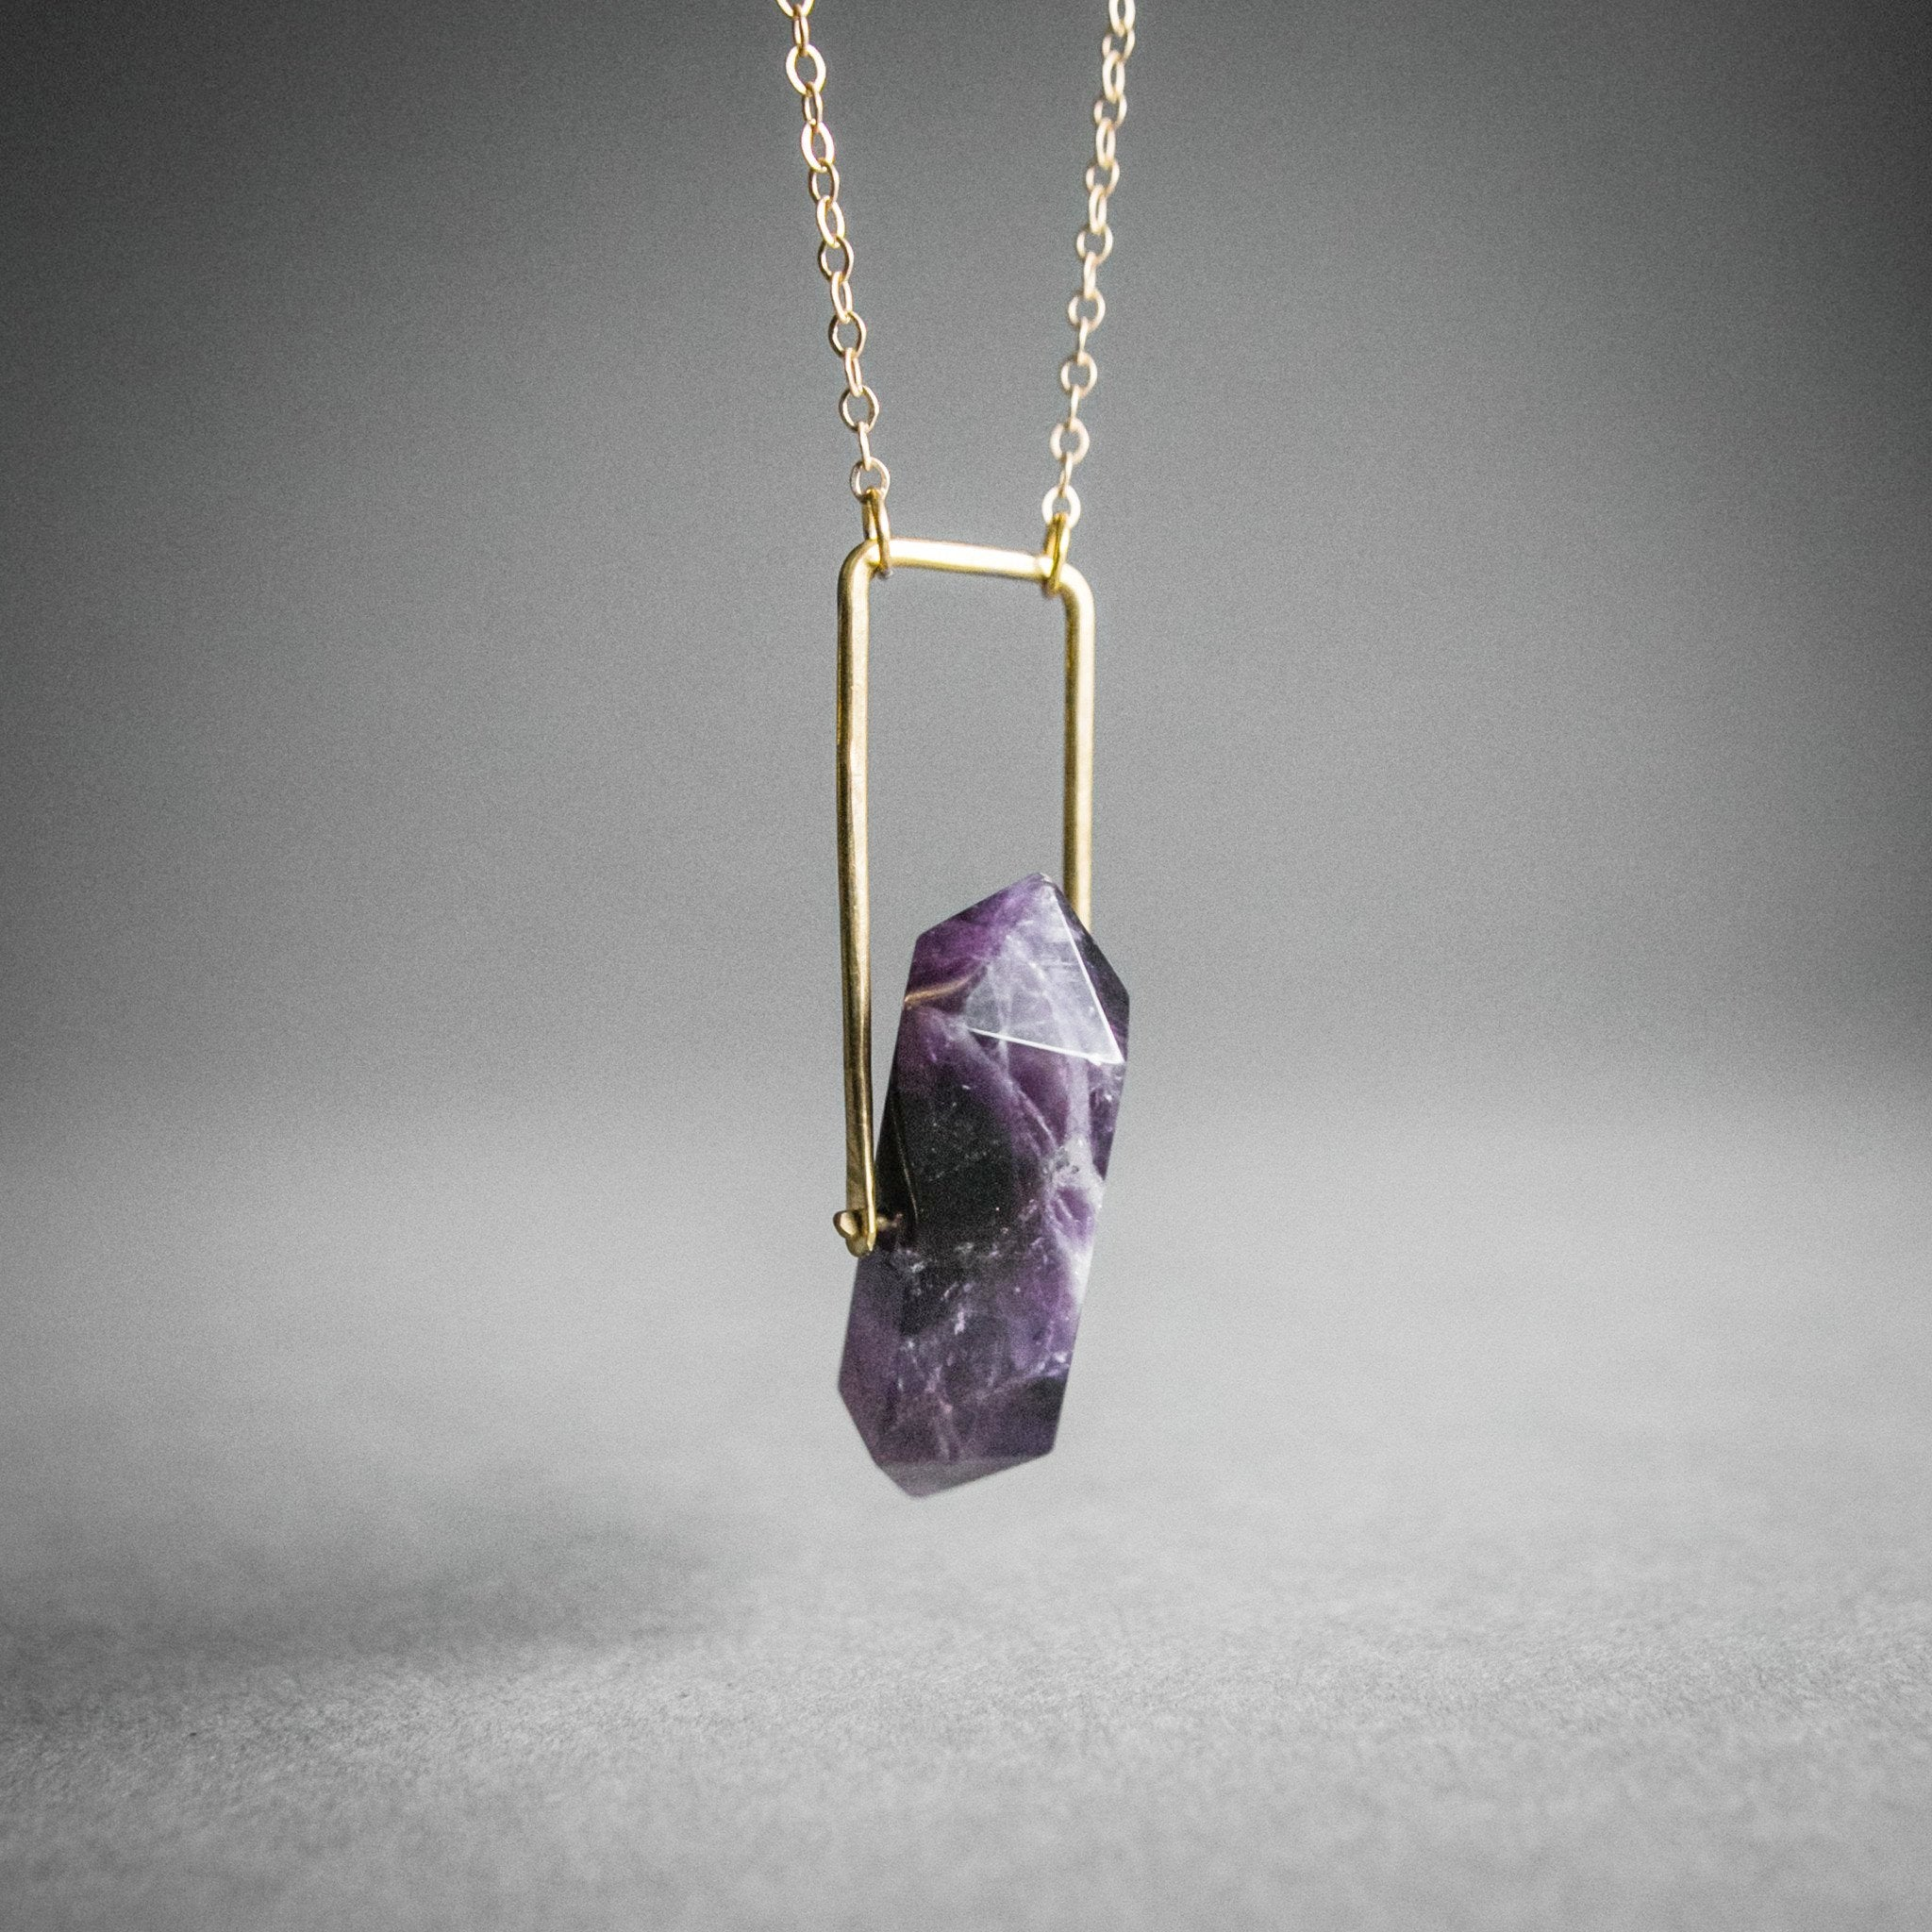 tright pipe products crystal jane amethyst pendant dreamamethyst elevate dream